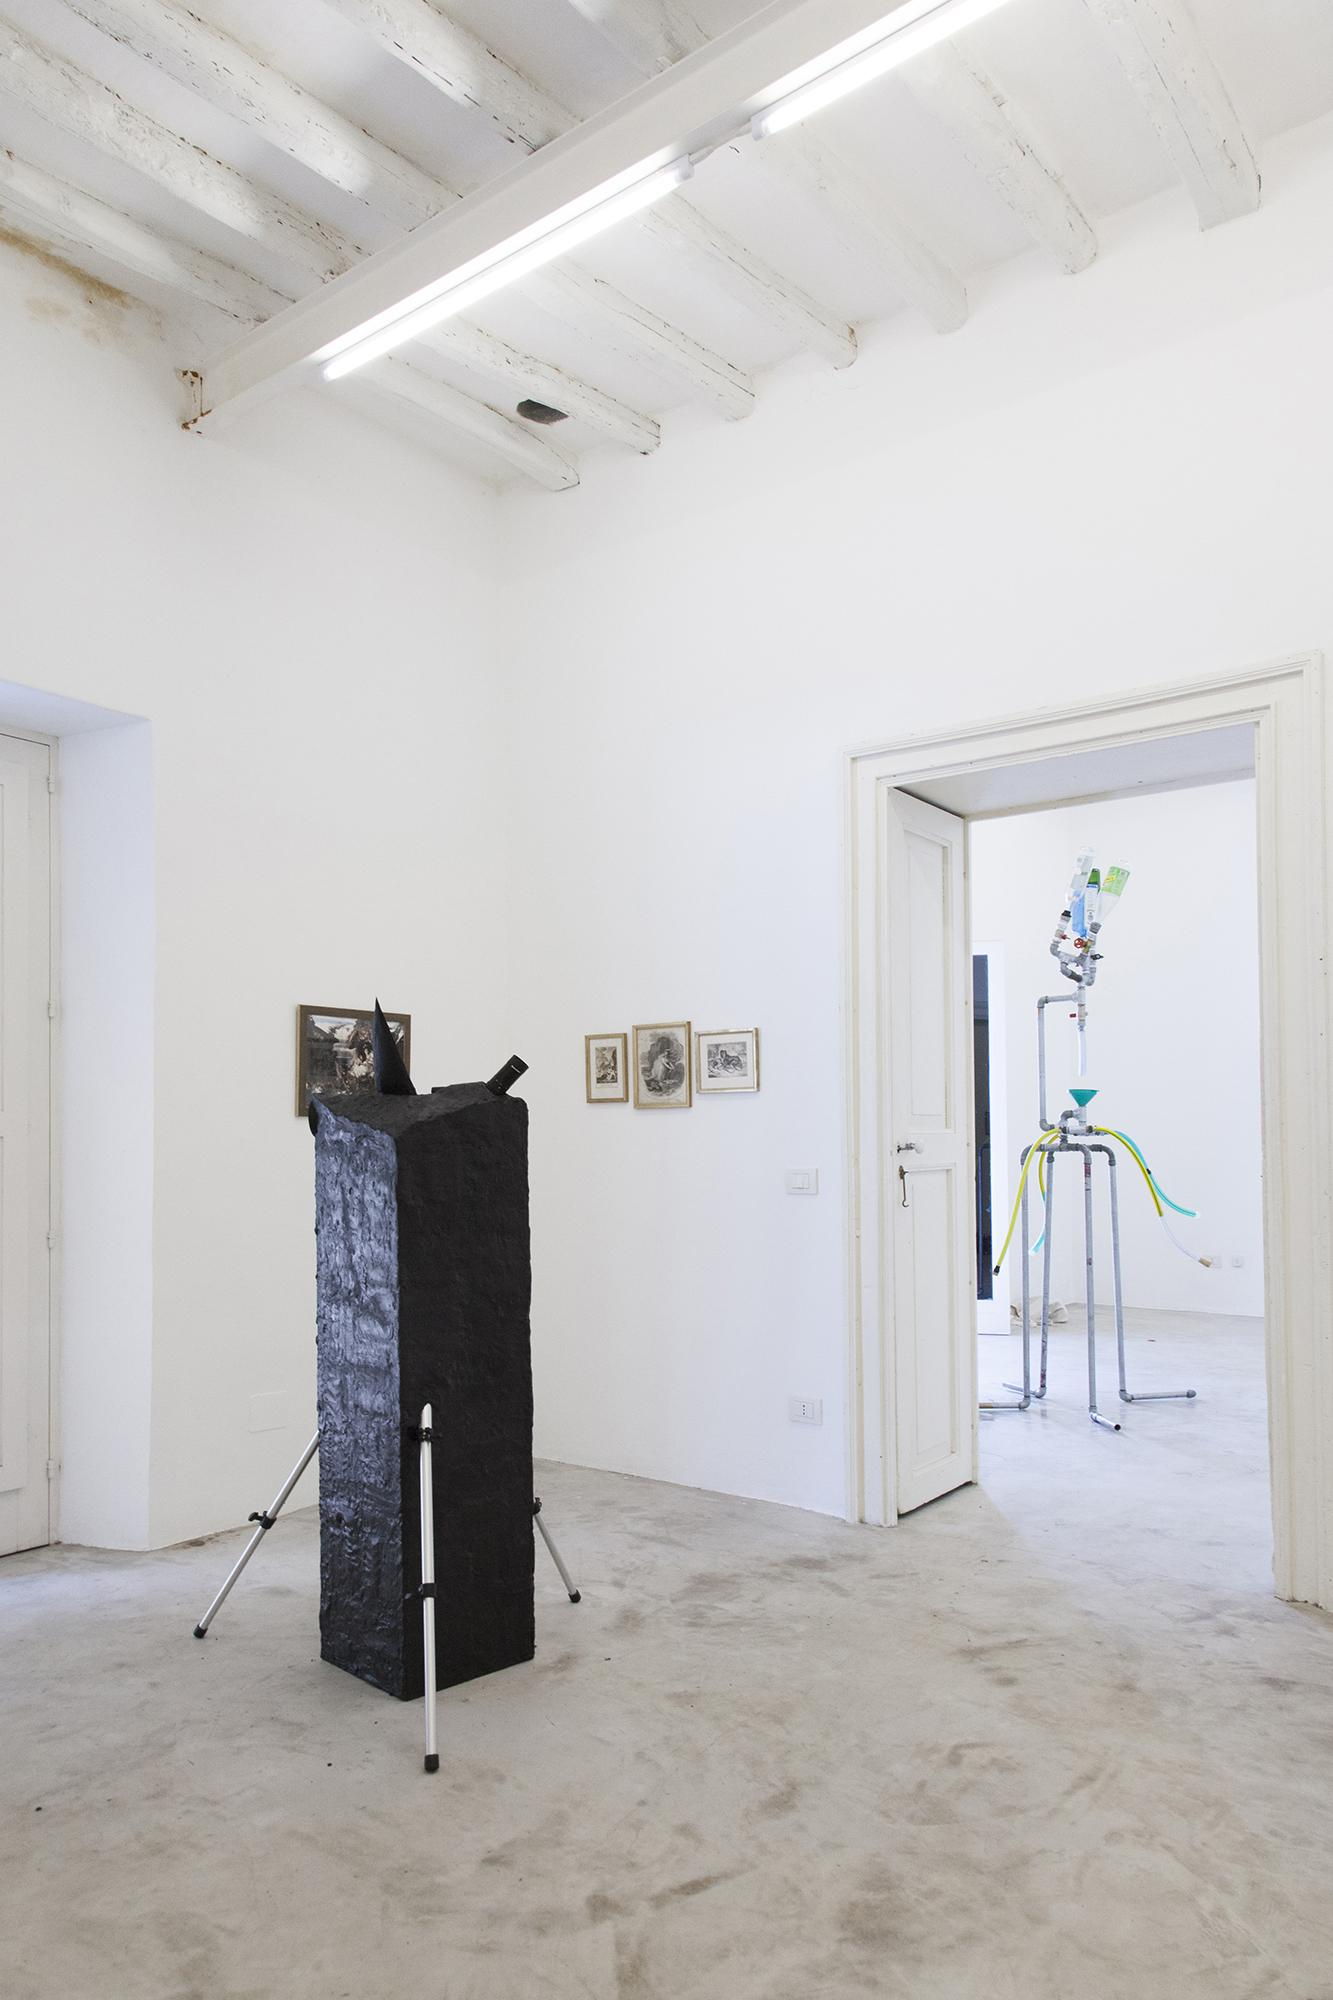 "Isola e Norzi /Elsewhere/, 2008 Telescope, tripod, Plasticine 90 x 90 x 150 cm Installation view ""I Will Go Where I Don't Belong"" Photo: Giovanna Silva Courtesy Fiorucci Art Trust, London"